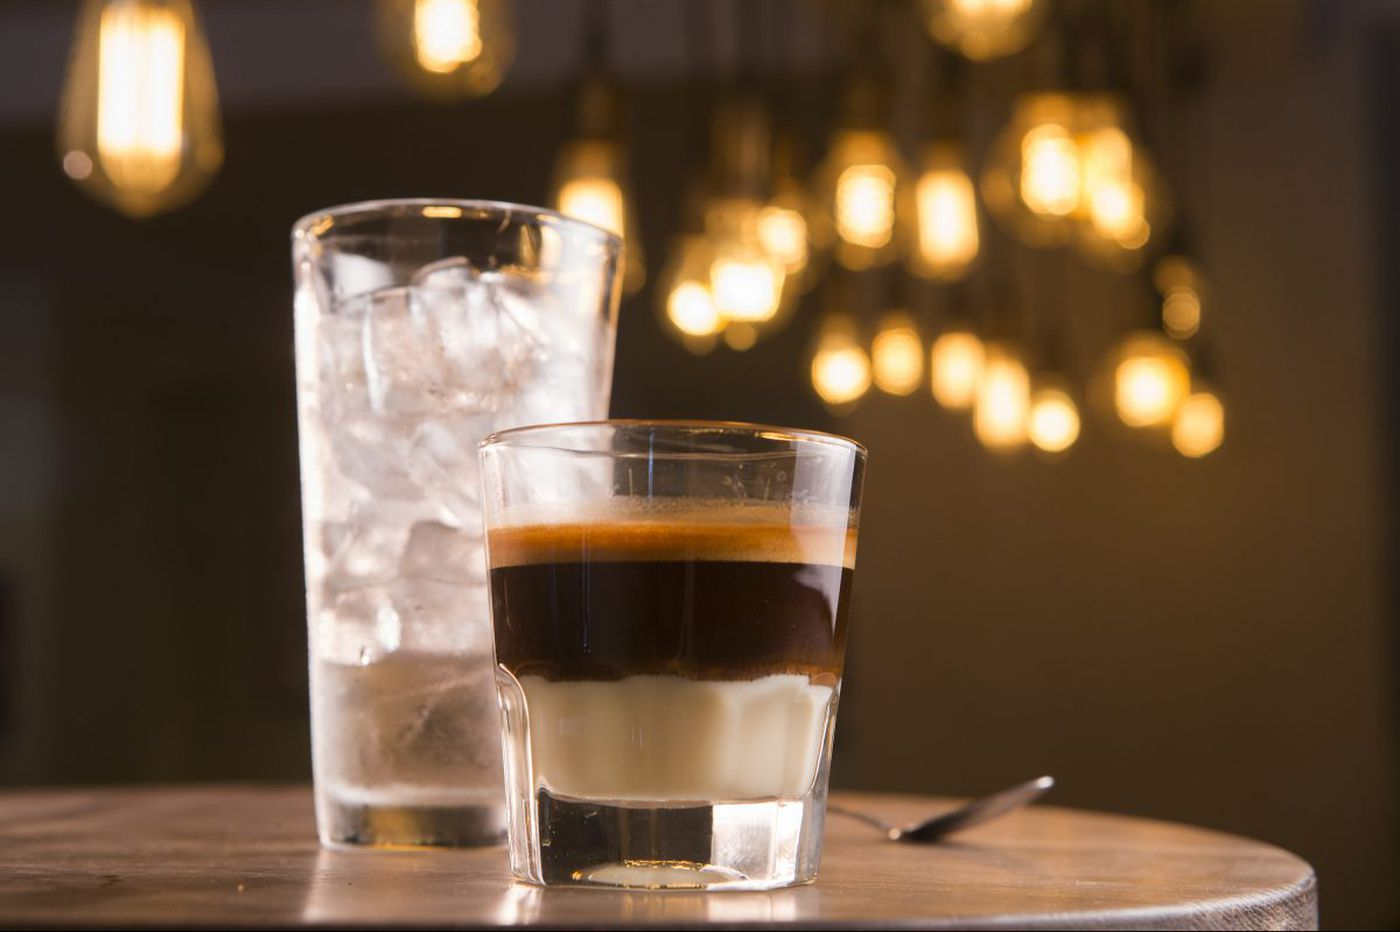 How to make your favorite iced coffee - Vietnamese, Malaysian, Italian, or cold-brew